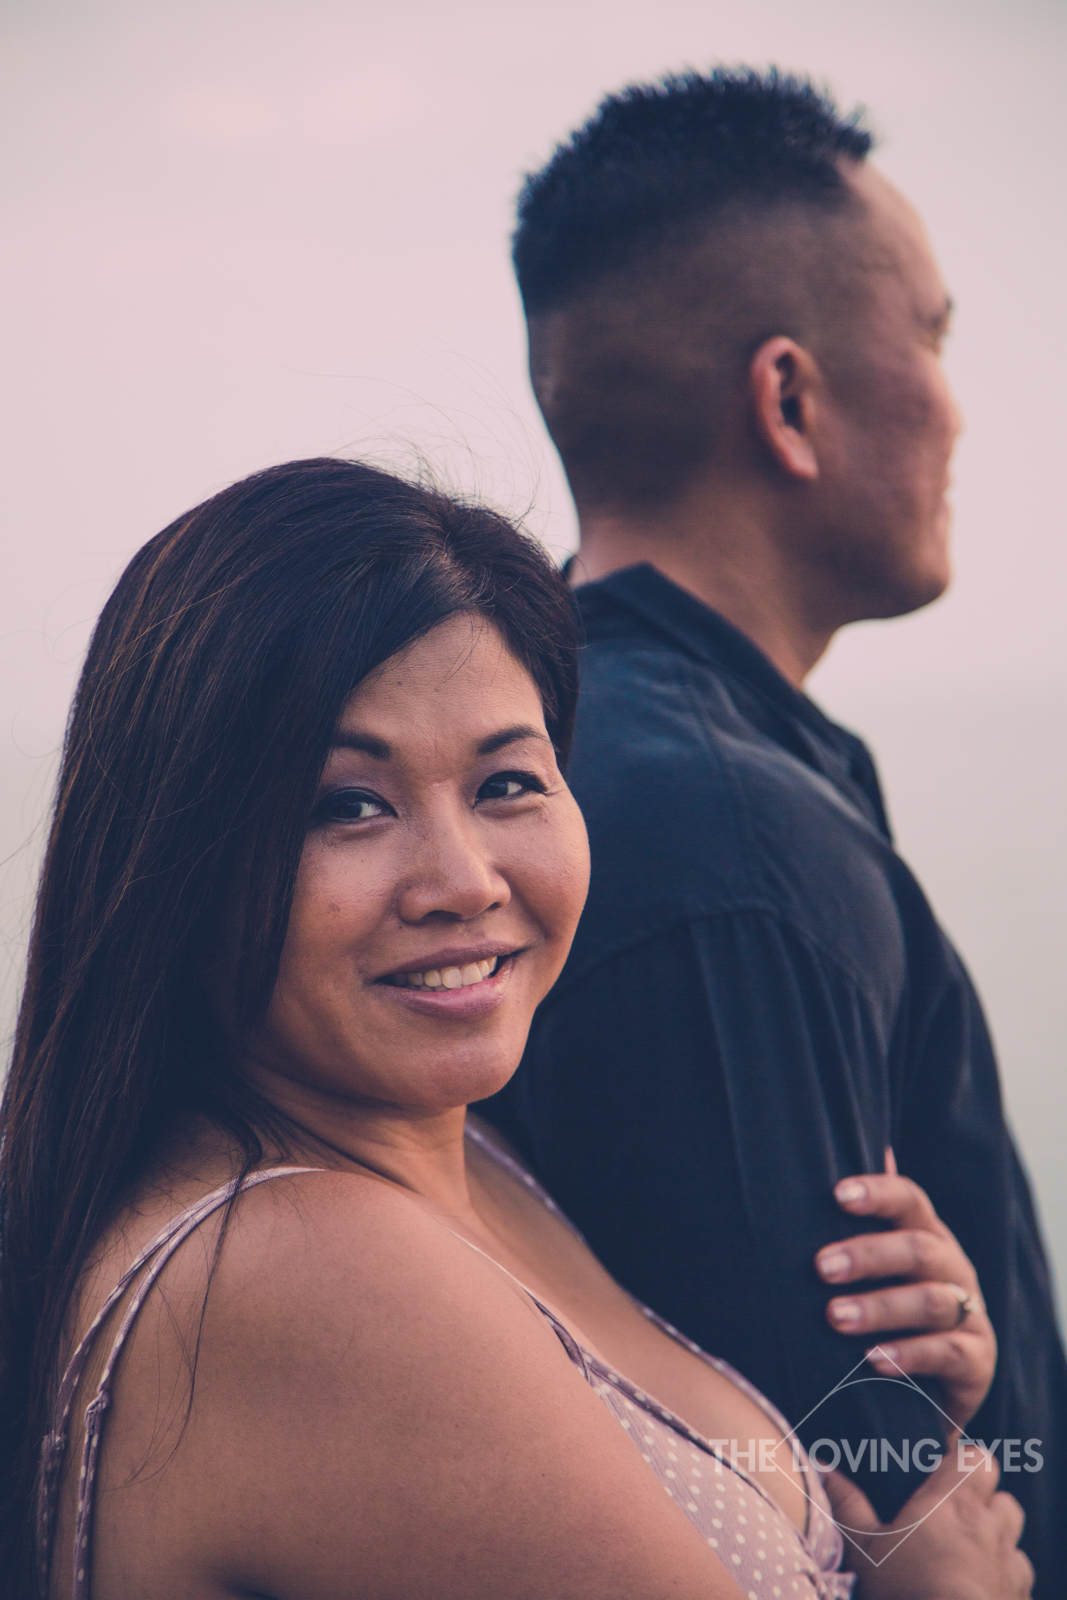 Jeana_and_Clyde_Engagement-12.jpg